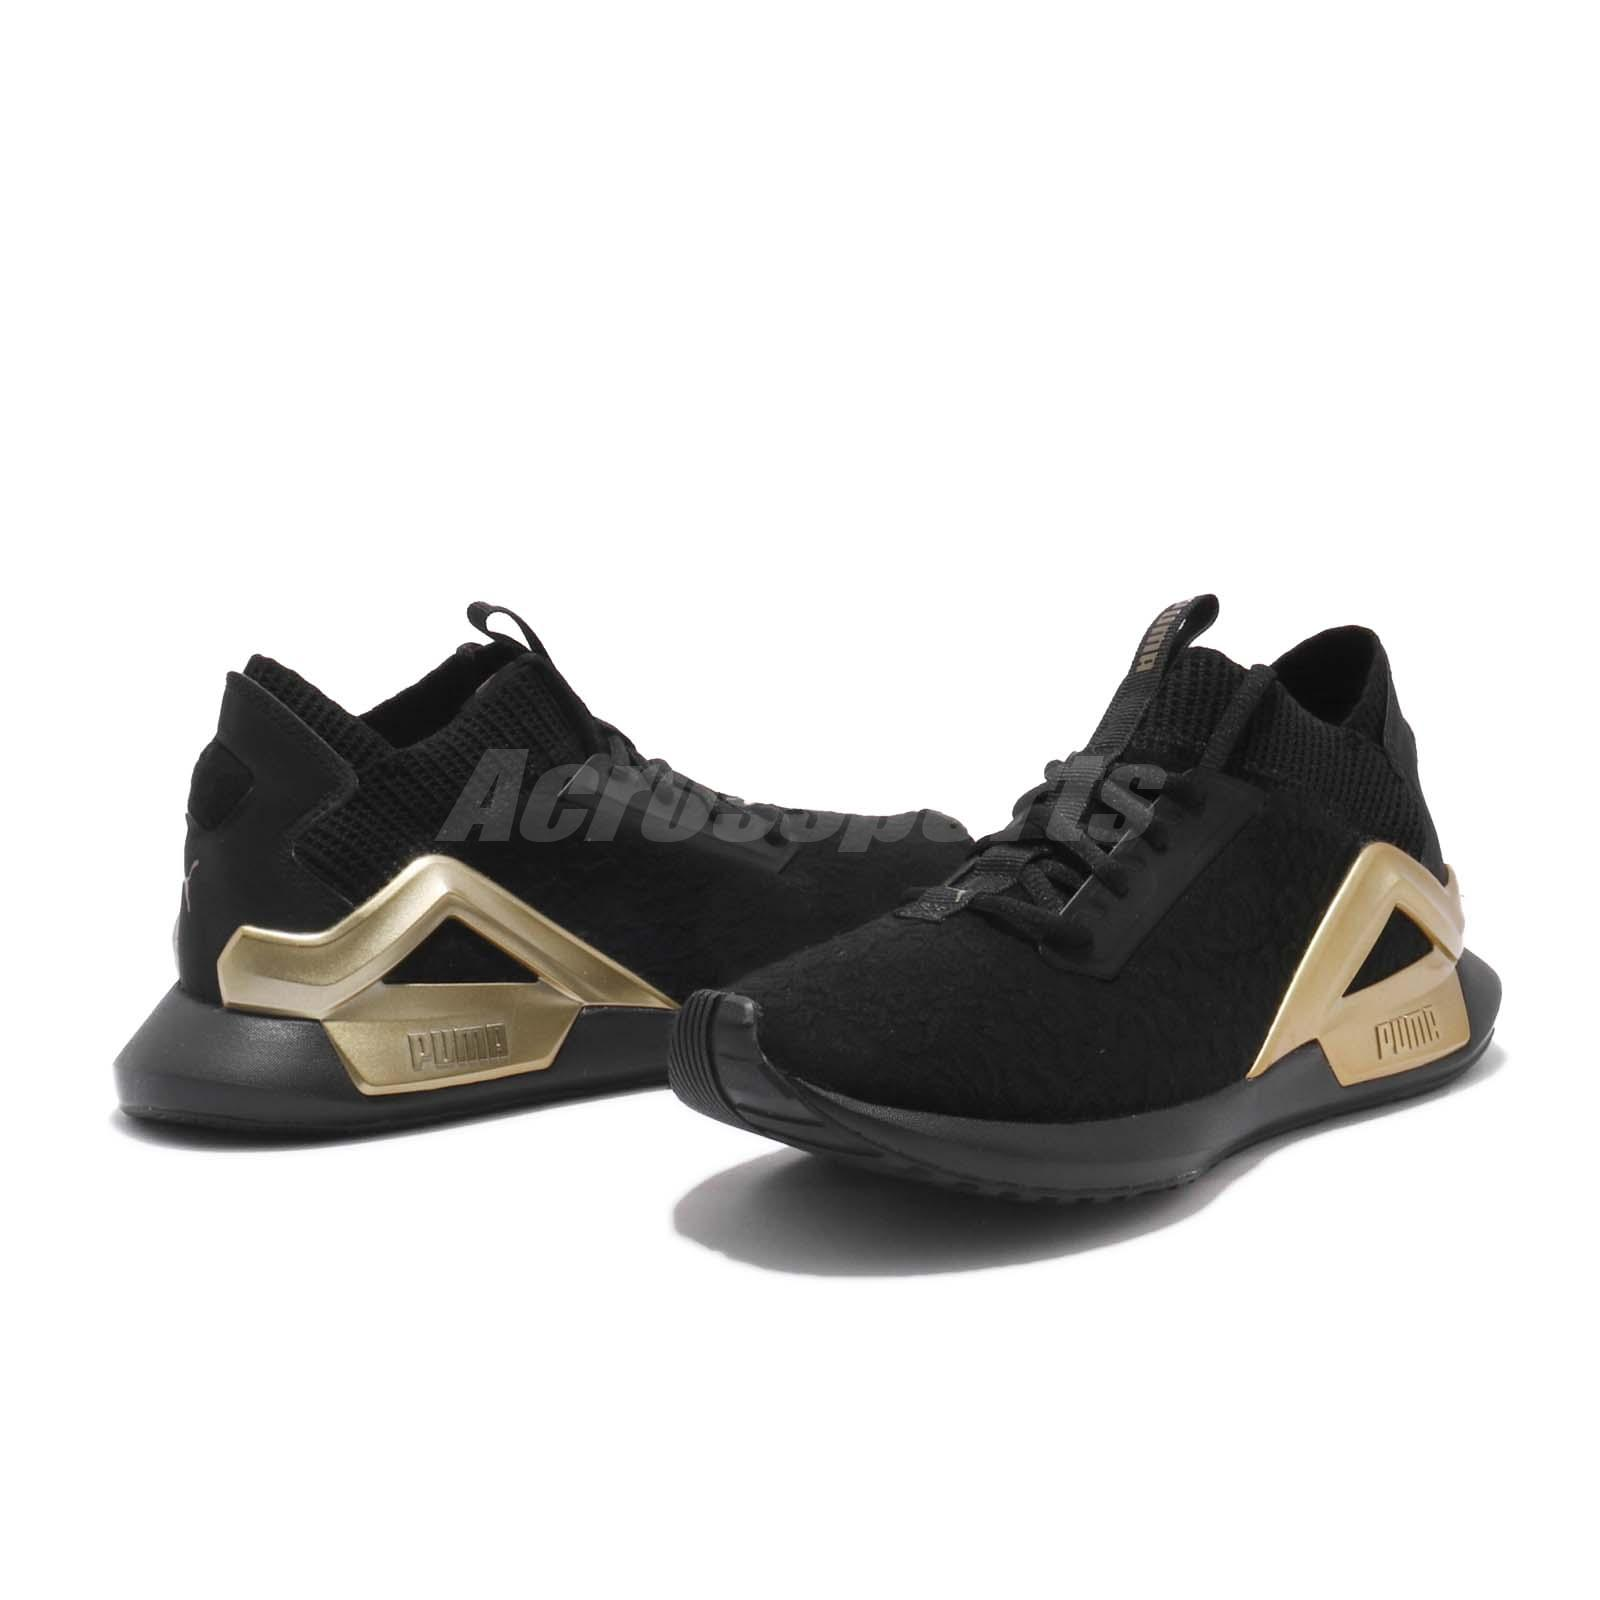 0fa54f934add Puma Rogue Metallic Wns Black Gold Women Cross Training Shoes ...